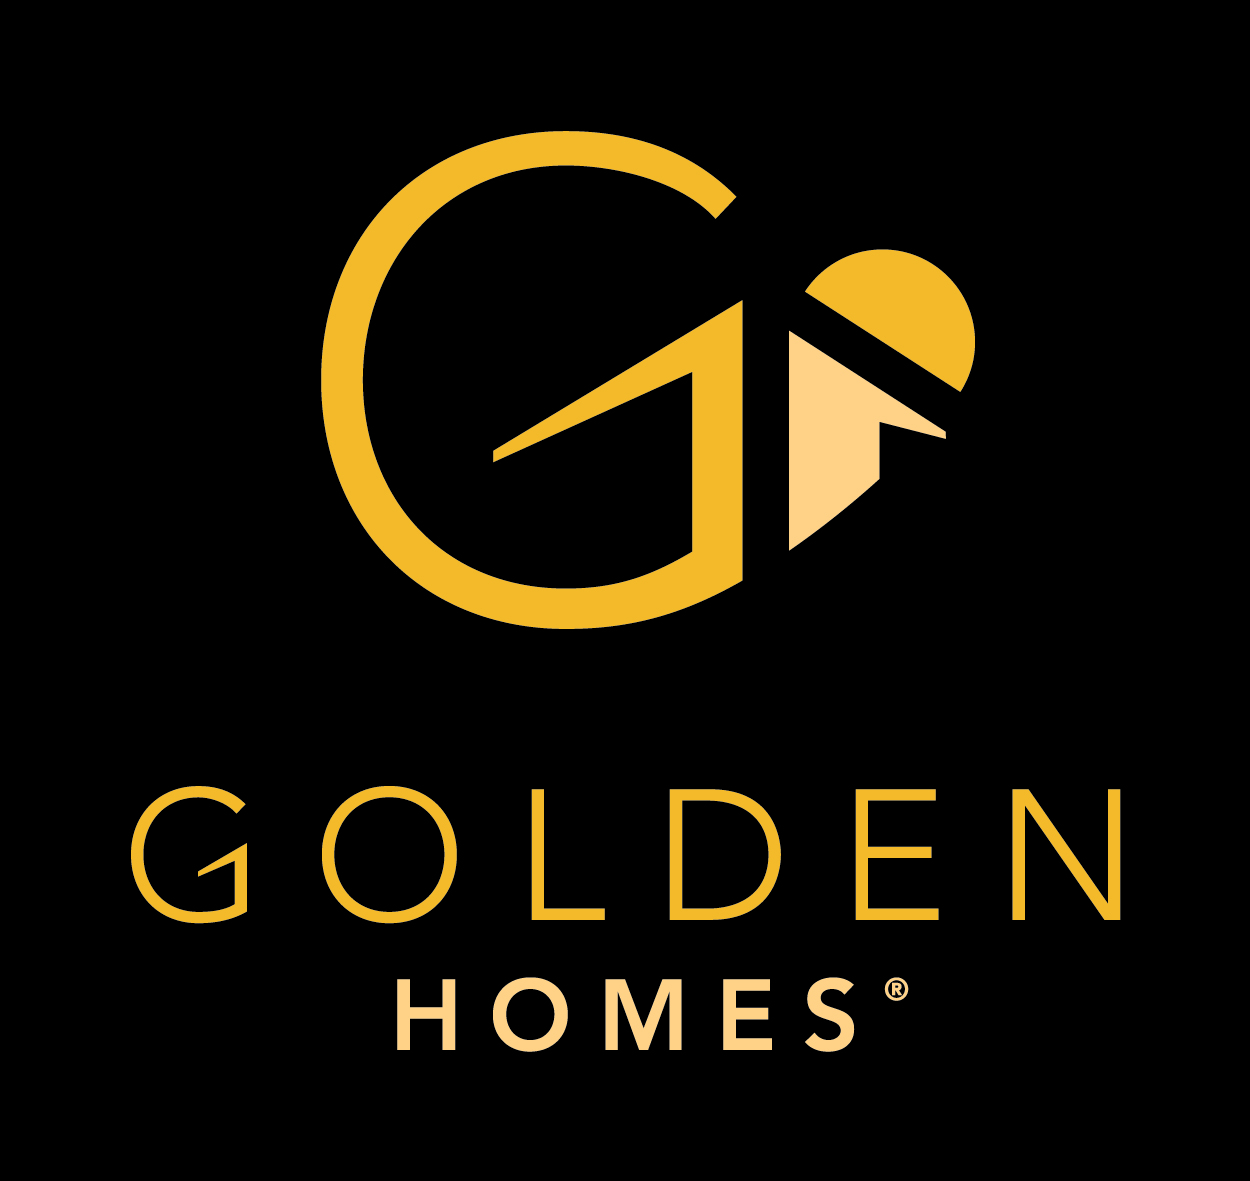 Golden Homes